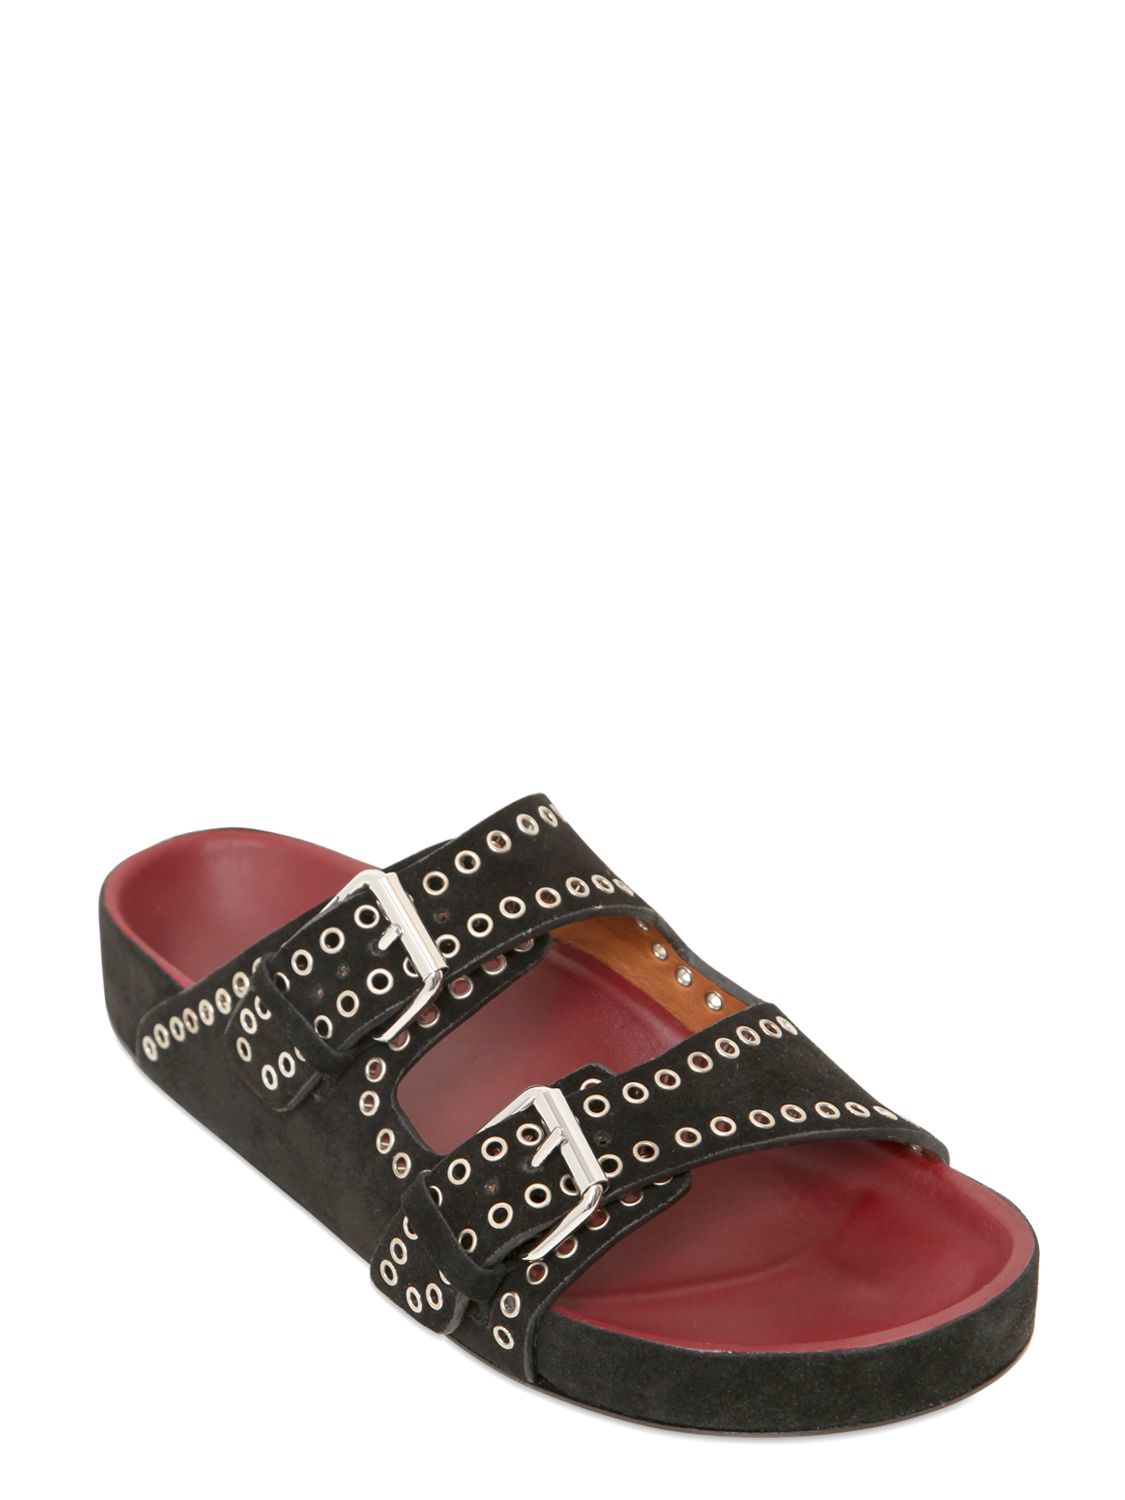 Isabel Marant Lenny Slide Sandals 2015 cheap price cheap sale outlet store outlet fake cheap wiki sale latest collections onjyw